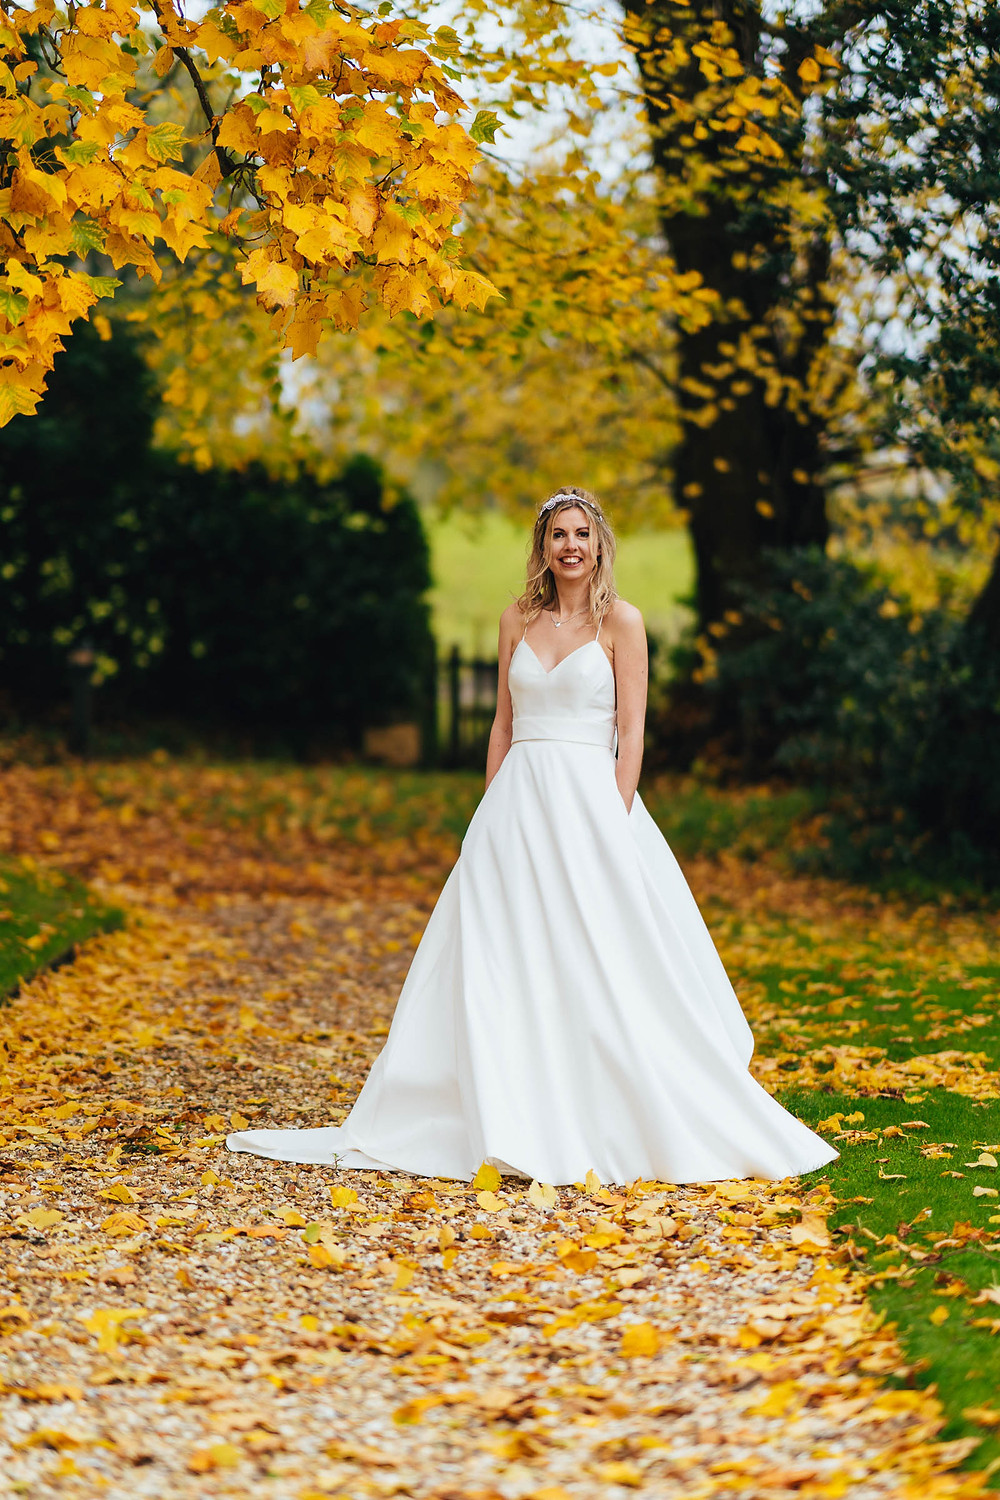 how to have an eco-friendly wedding, eco-friendly wedding dress, pre-loved